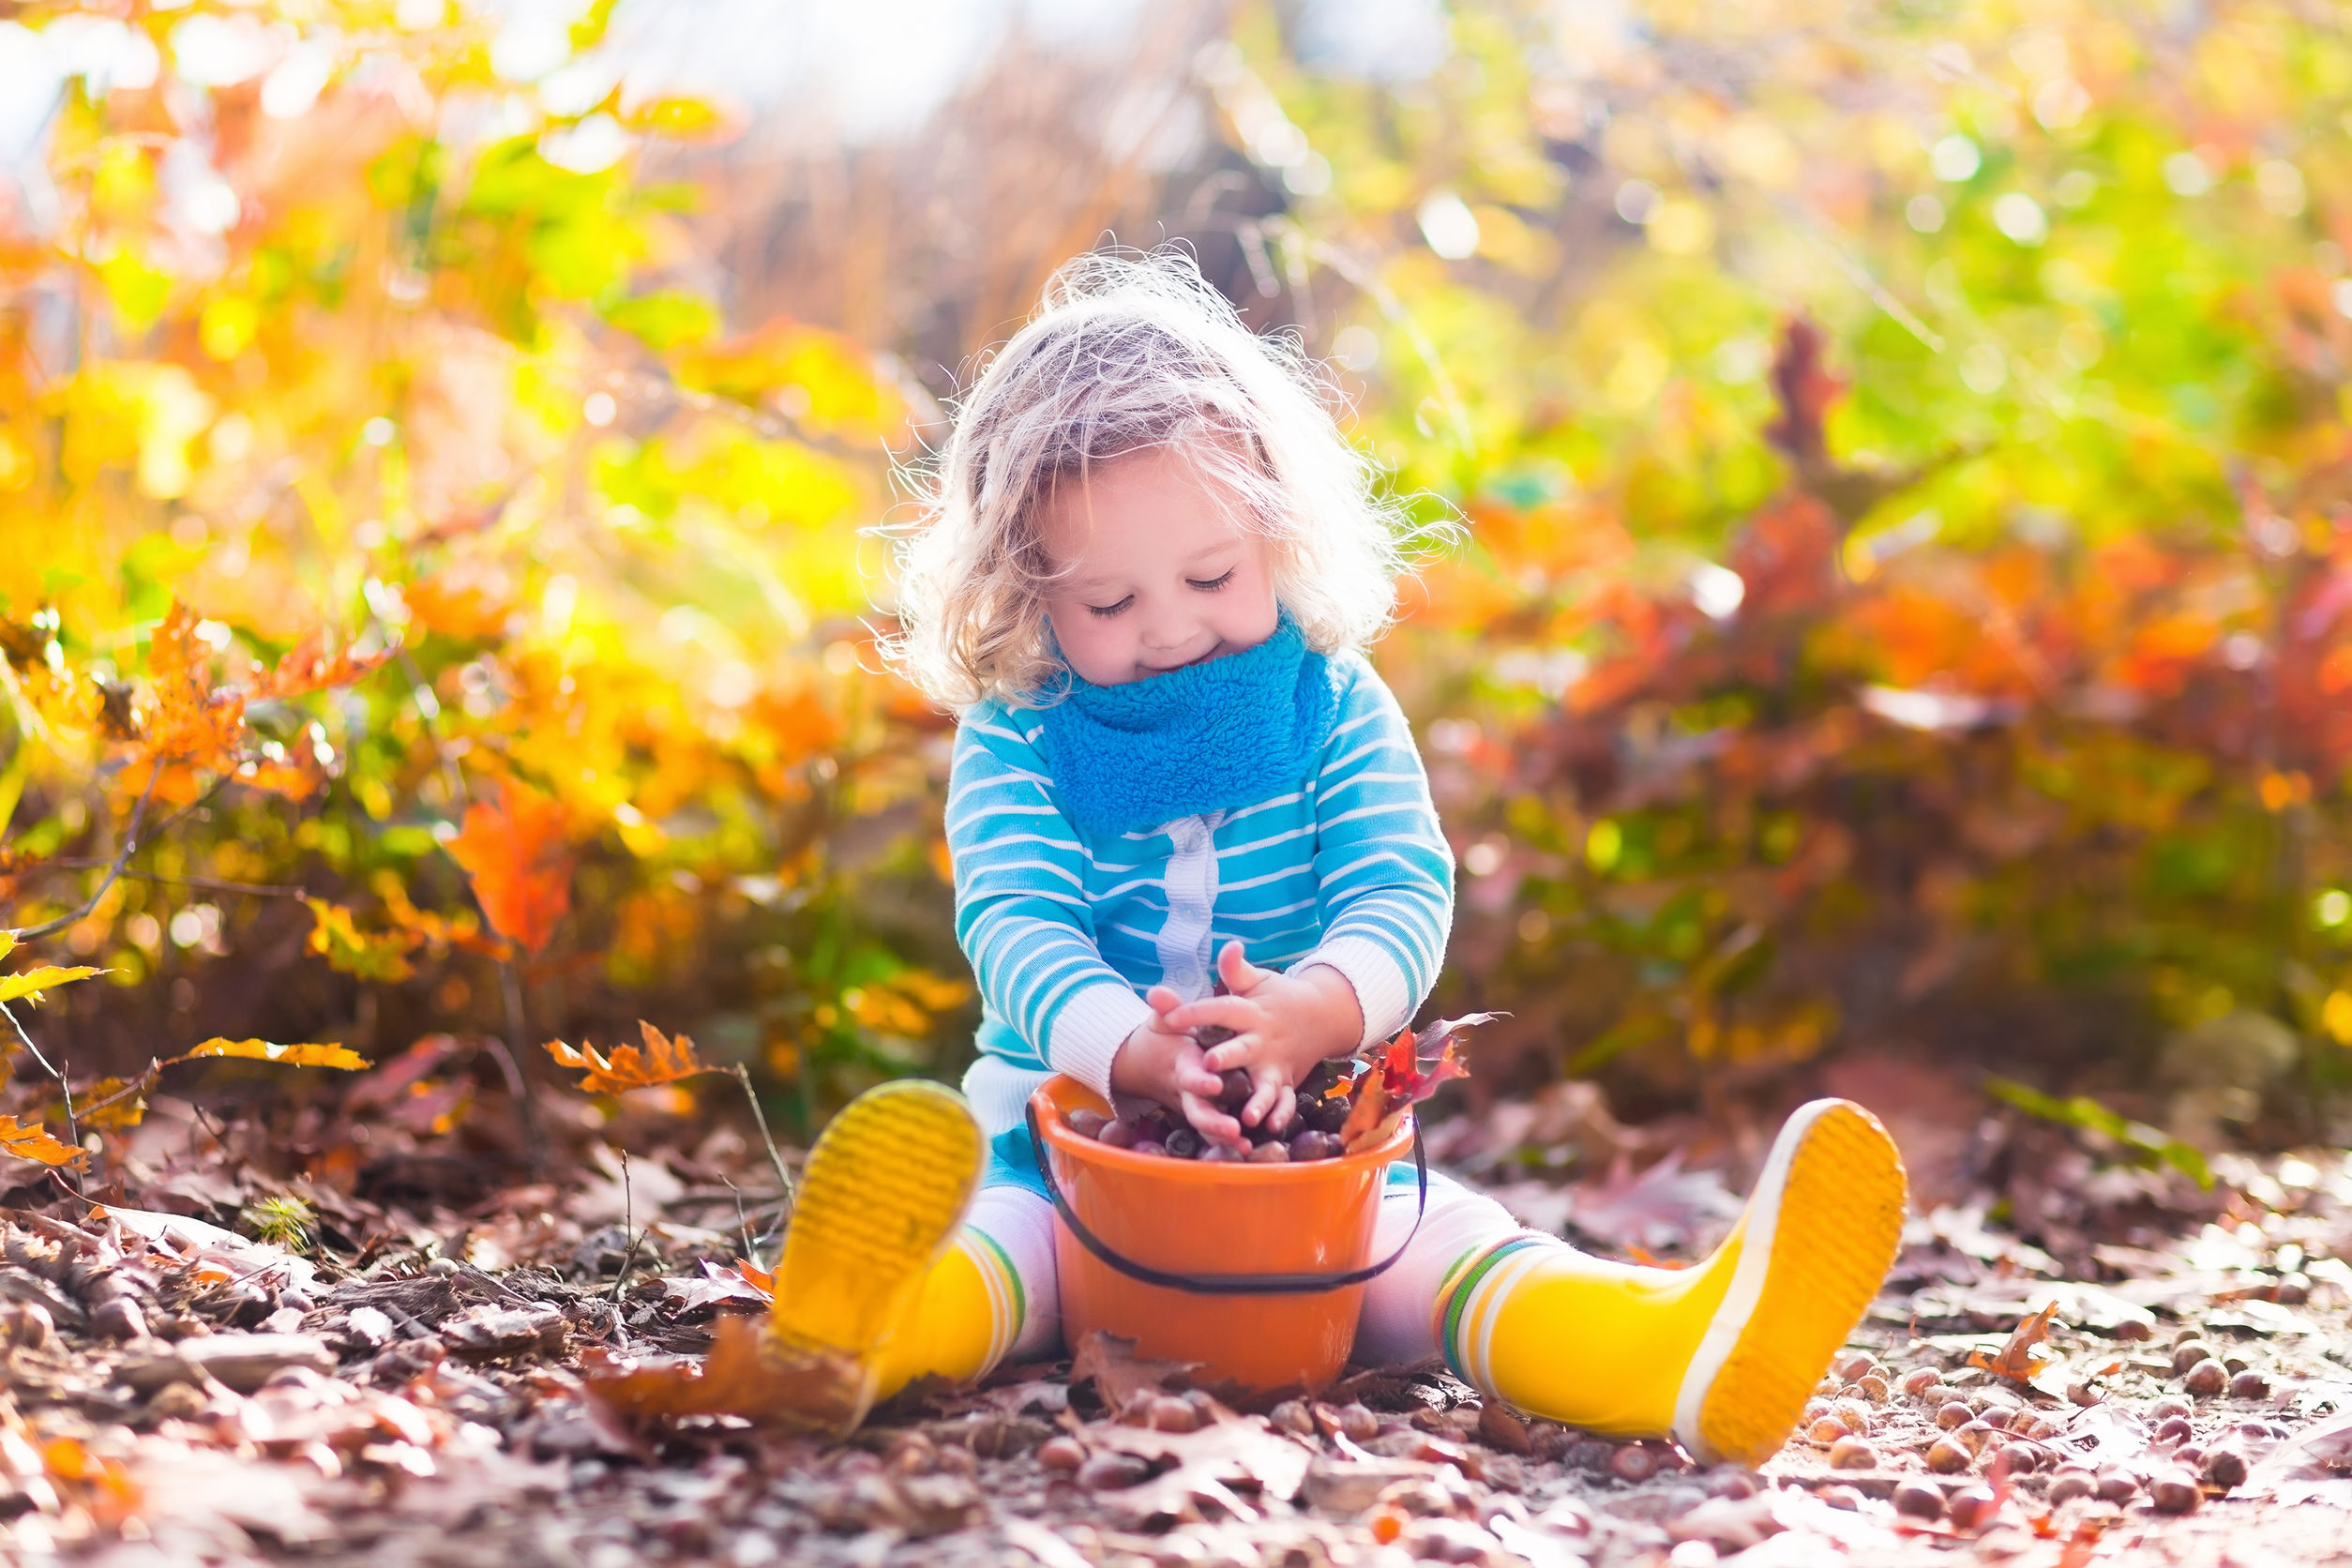 autumn craft ideas for early years - collecting sticks